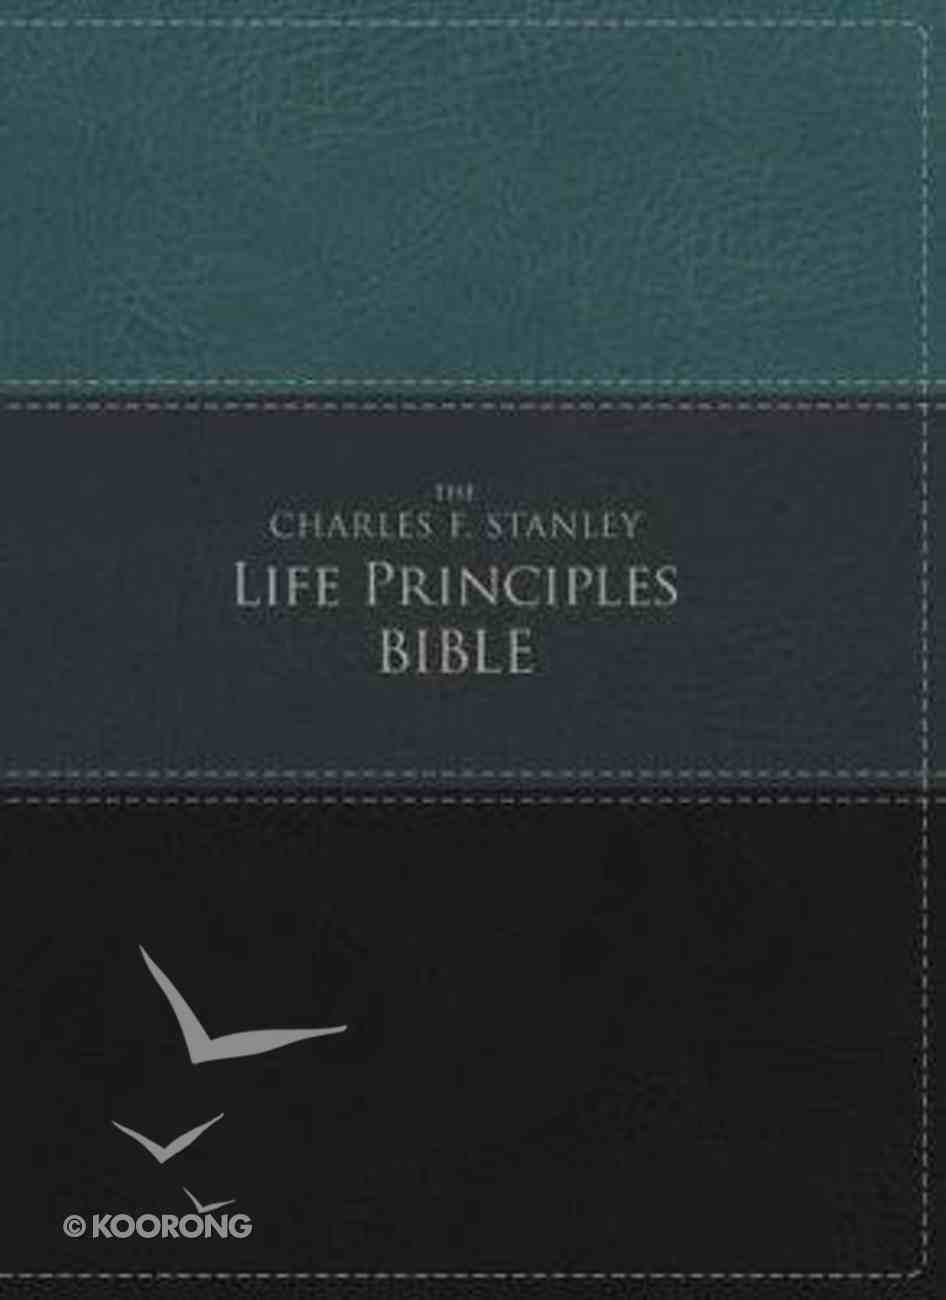 NIV the Charles F. Stanley Life Principles Bible Green/Black (Red Letter Edition) Premium Imitation Leather